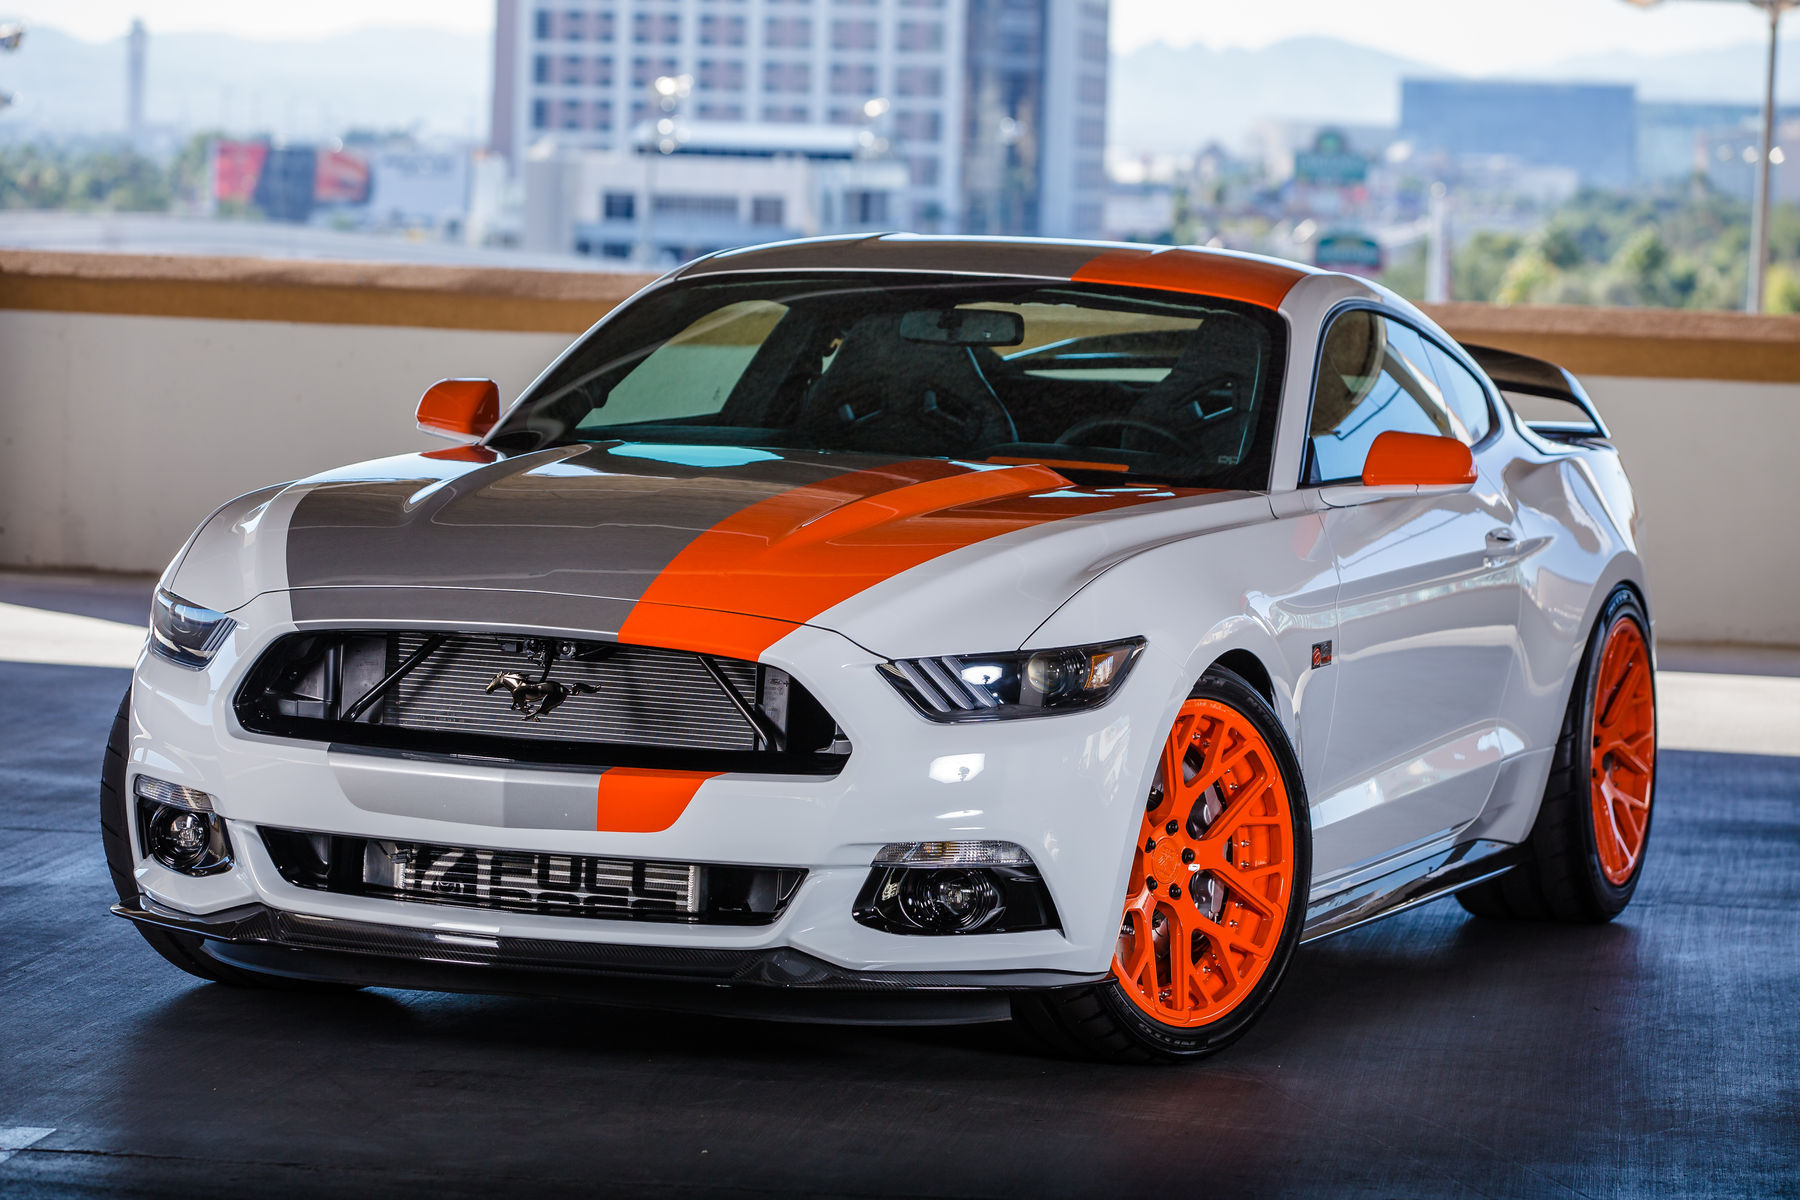 2015 Ford Mustang | 2015 Bojix Ford Mustang